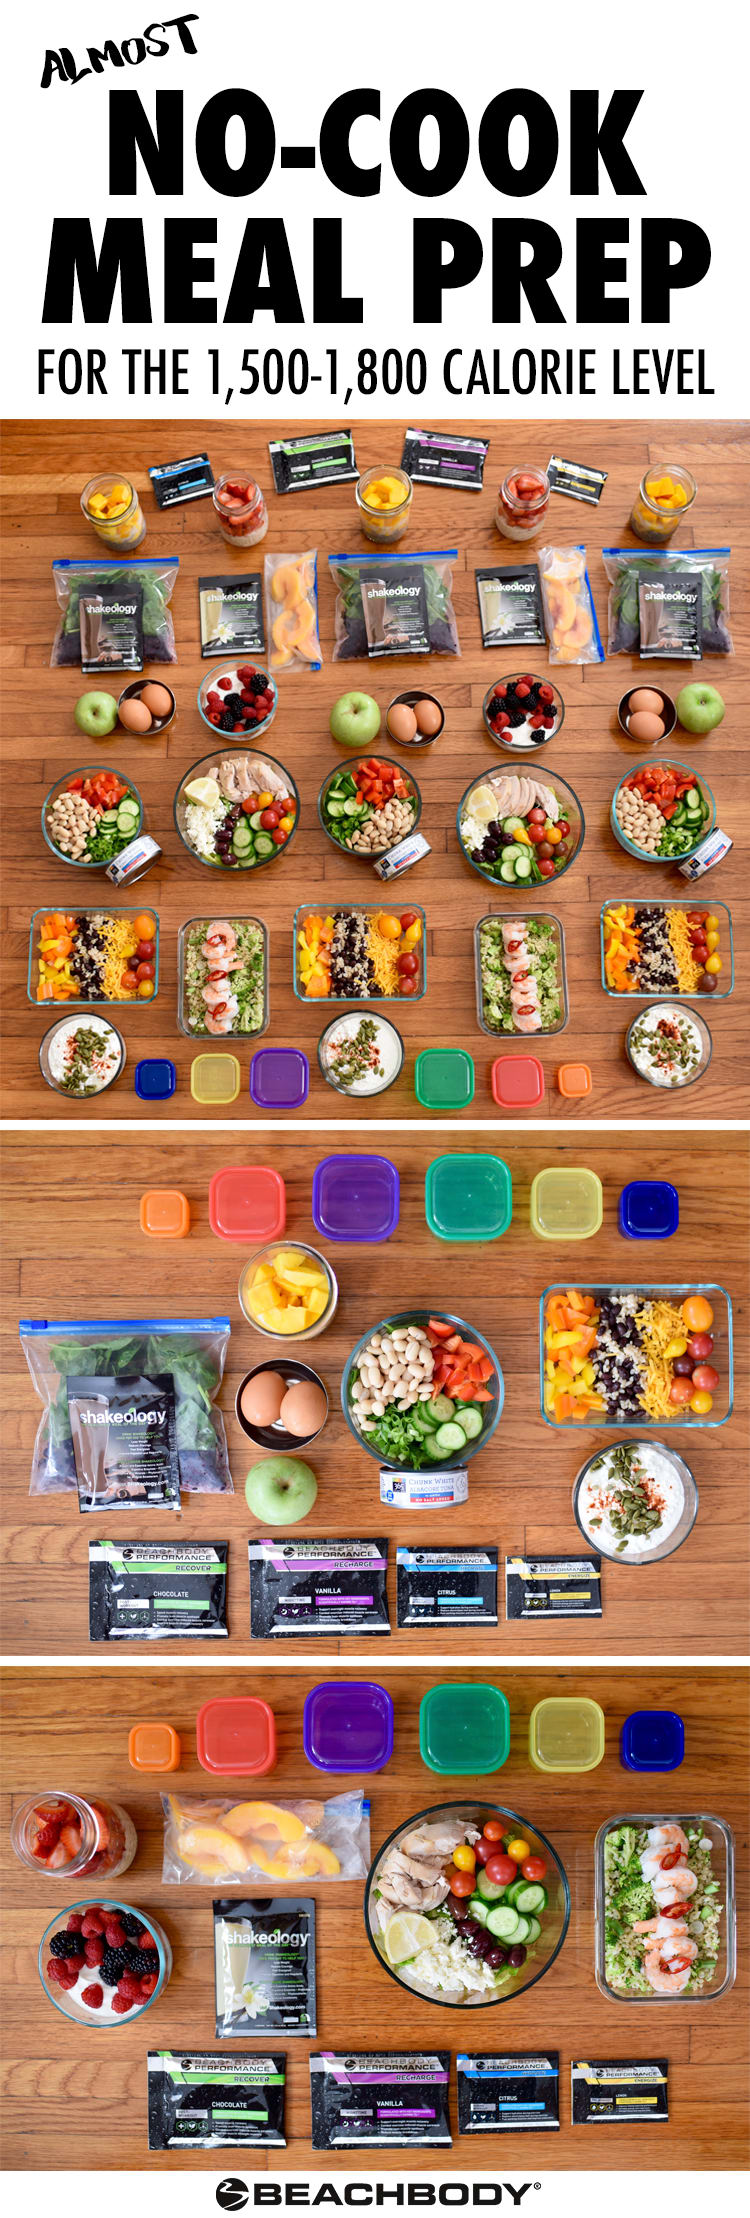 Almost No-Cook Meal Prep for the 1,500-1,800 Calorie Level #mealplanning #mealprep #healthyeating